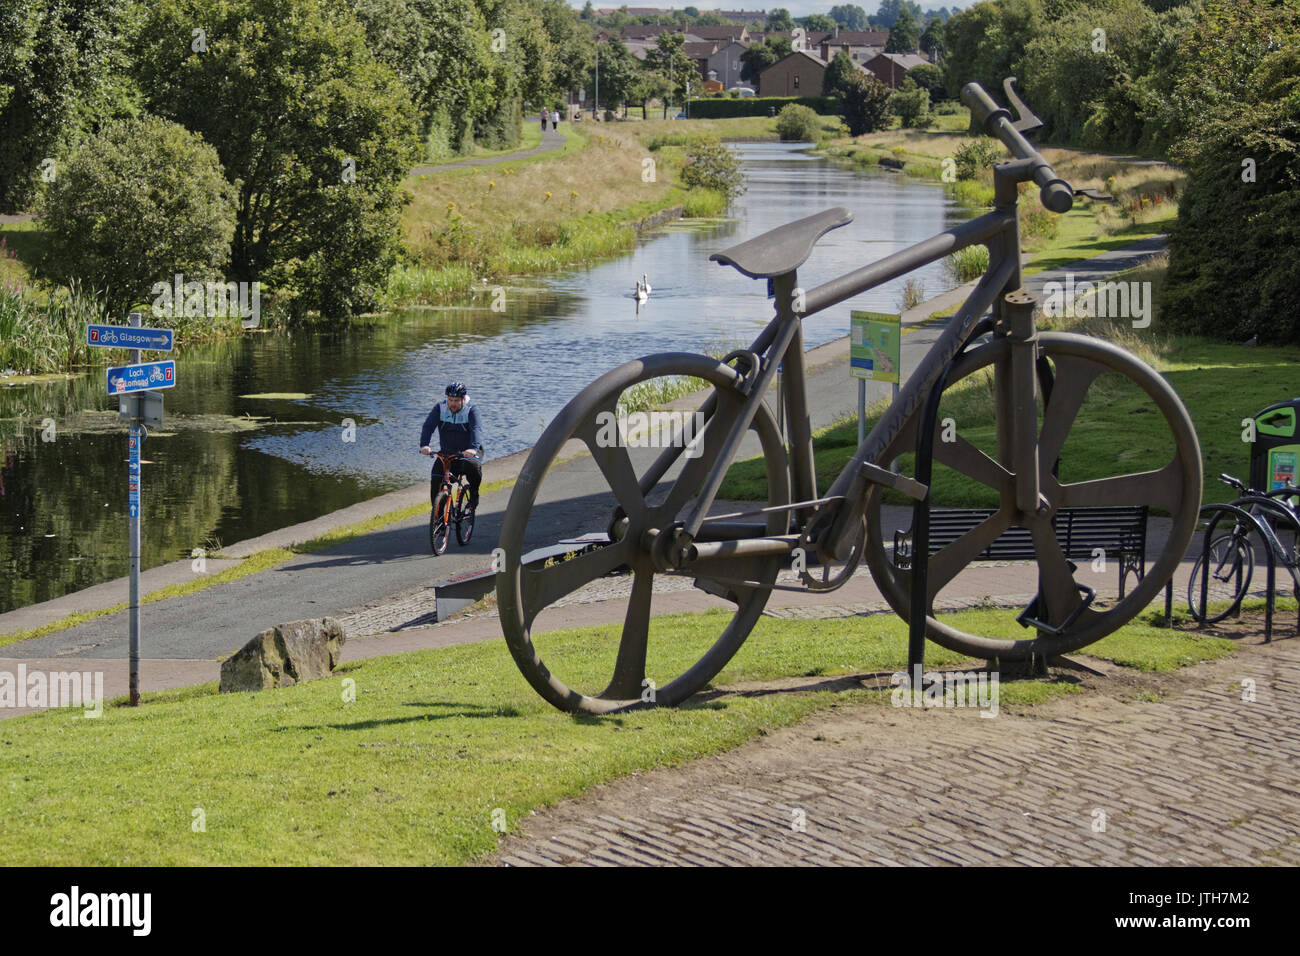 Clydebank, Glasgow, Scotland, UK. 9th August .Cyclists on NCN 7 pass the Bankies bike sculpture at Clydebank  Summer weather returns and locals enjoy the summer  on the Forth and Clyde canal as Scotland catches the sun and the UK suffers different  weather Credit: gerard ferry/Alamy Live News - Stock Image